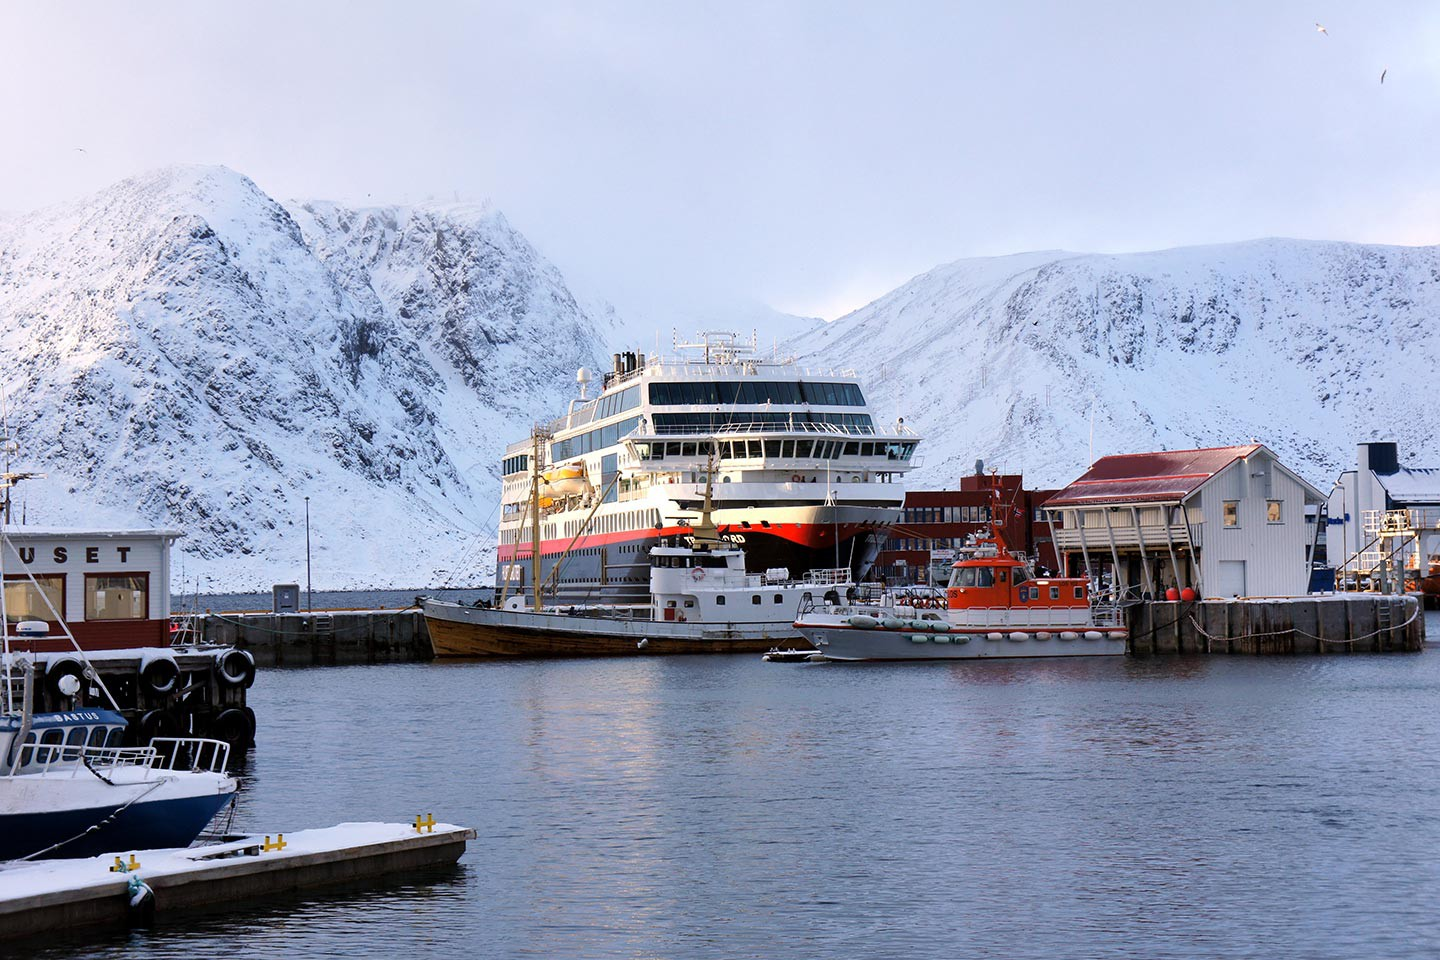 Afbeelding van Hurtigruten Witte Winter Expeditie MS Trollfjord Honningsvag Norway HGR Photo Competition